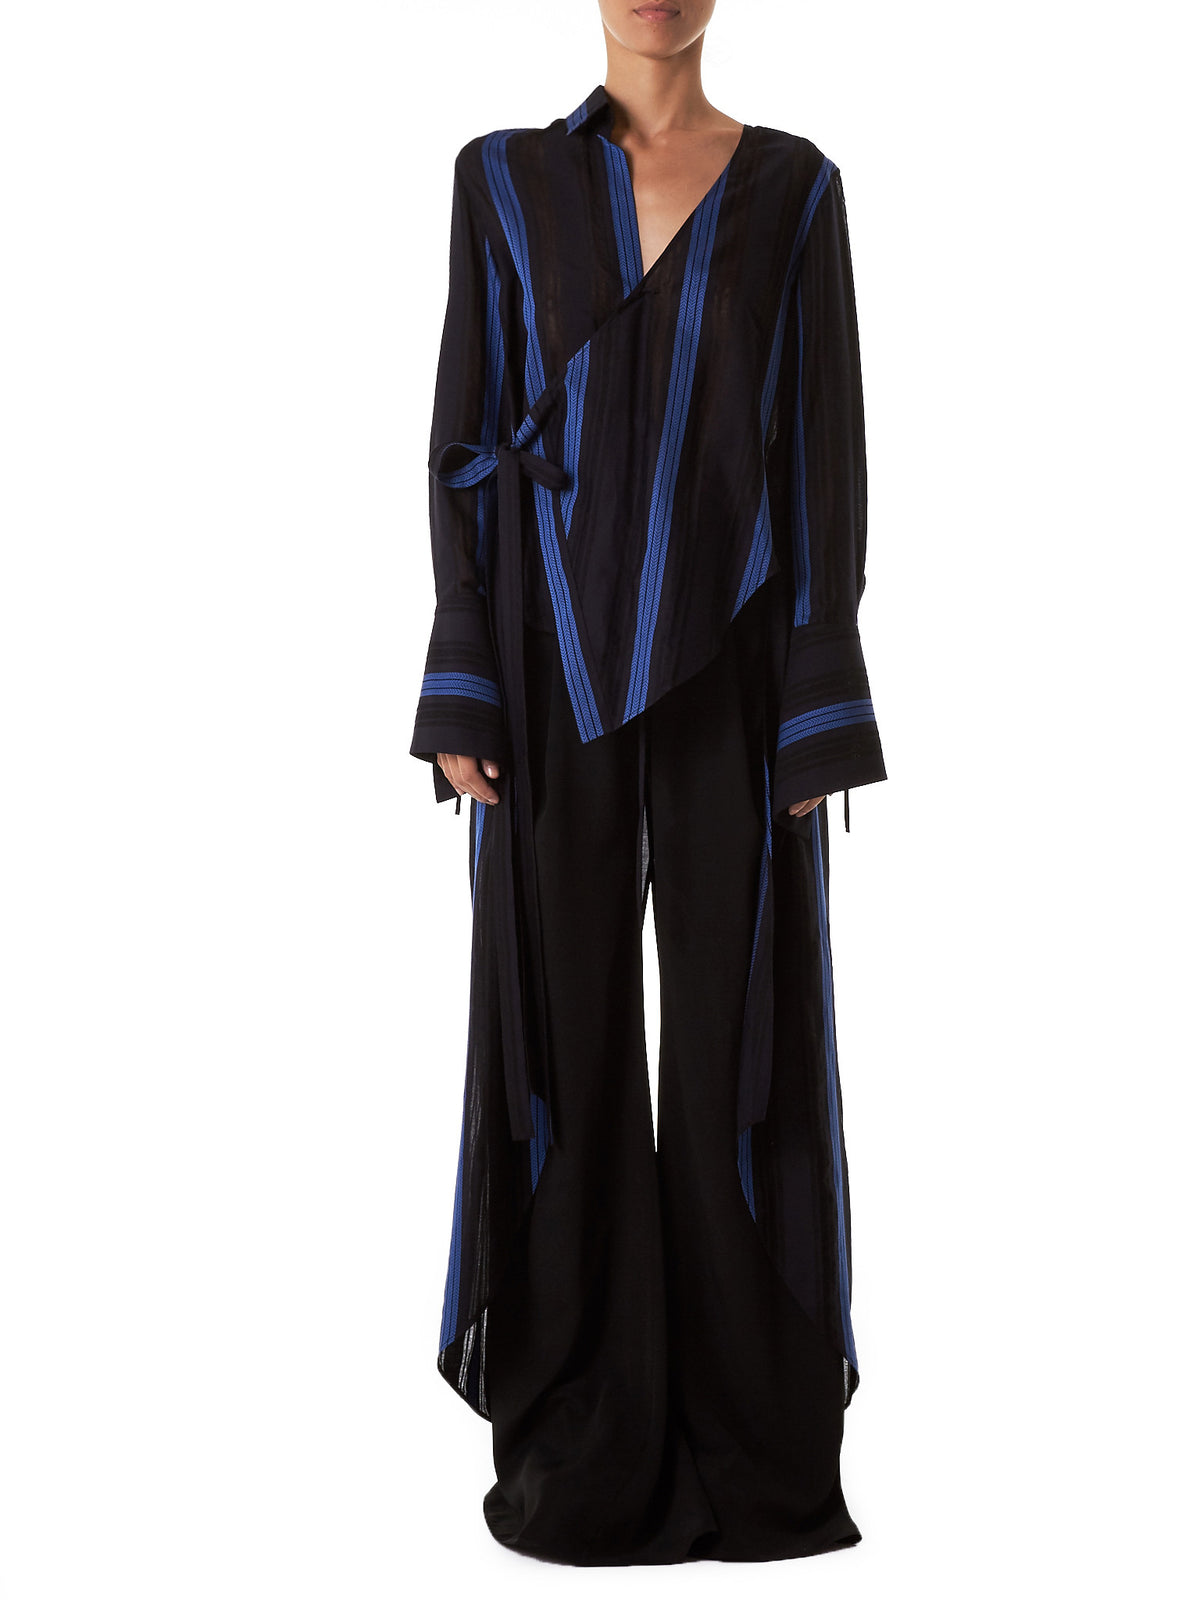 Vented Tailcoat Blouse (T19-BLACK-BLUE)